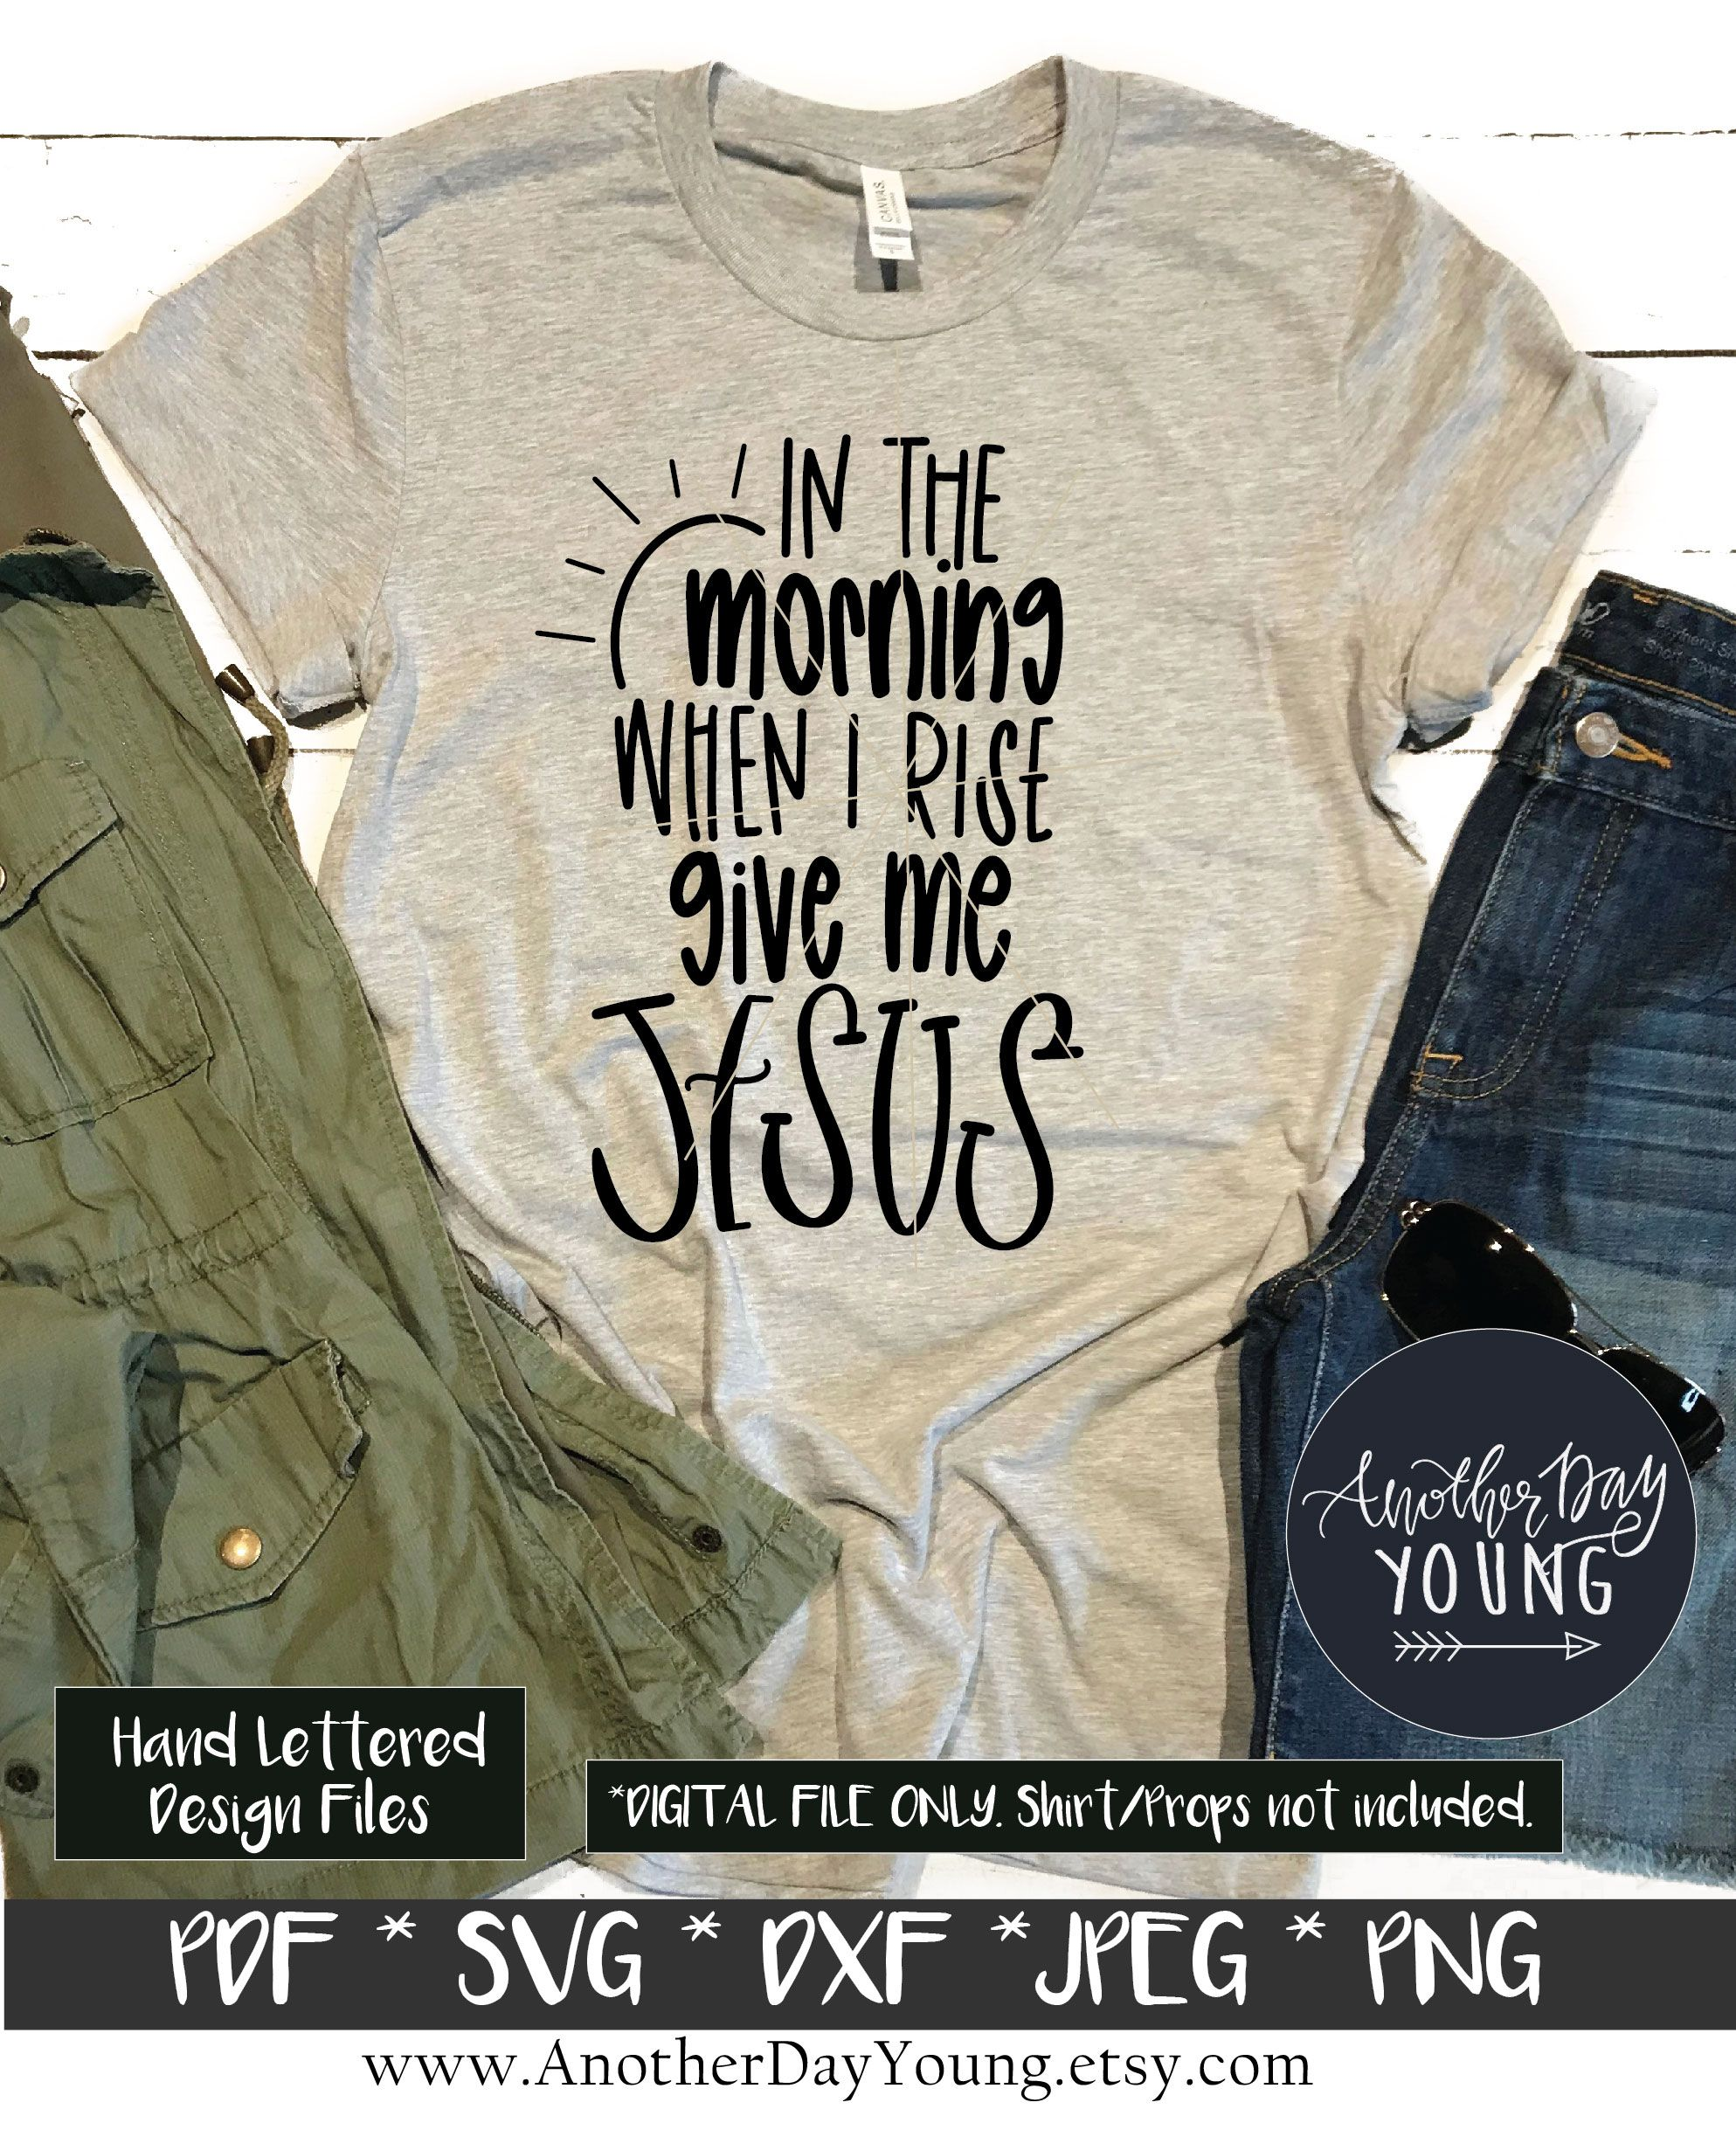 Pin by Another Day Young on Hand Lettered Christian SVG ...